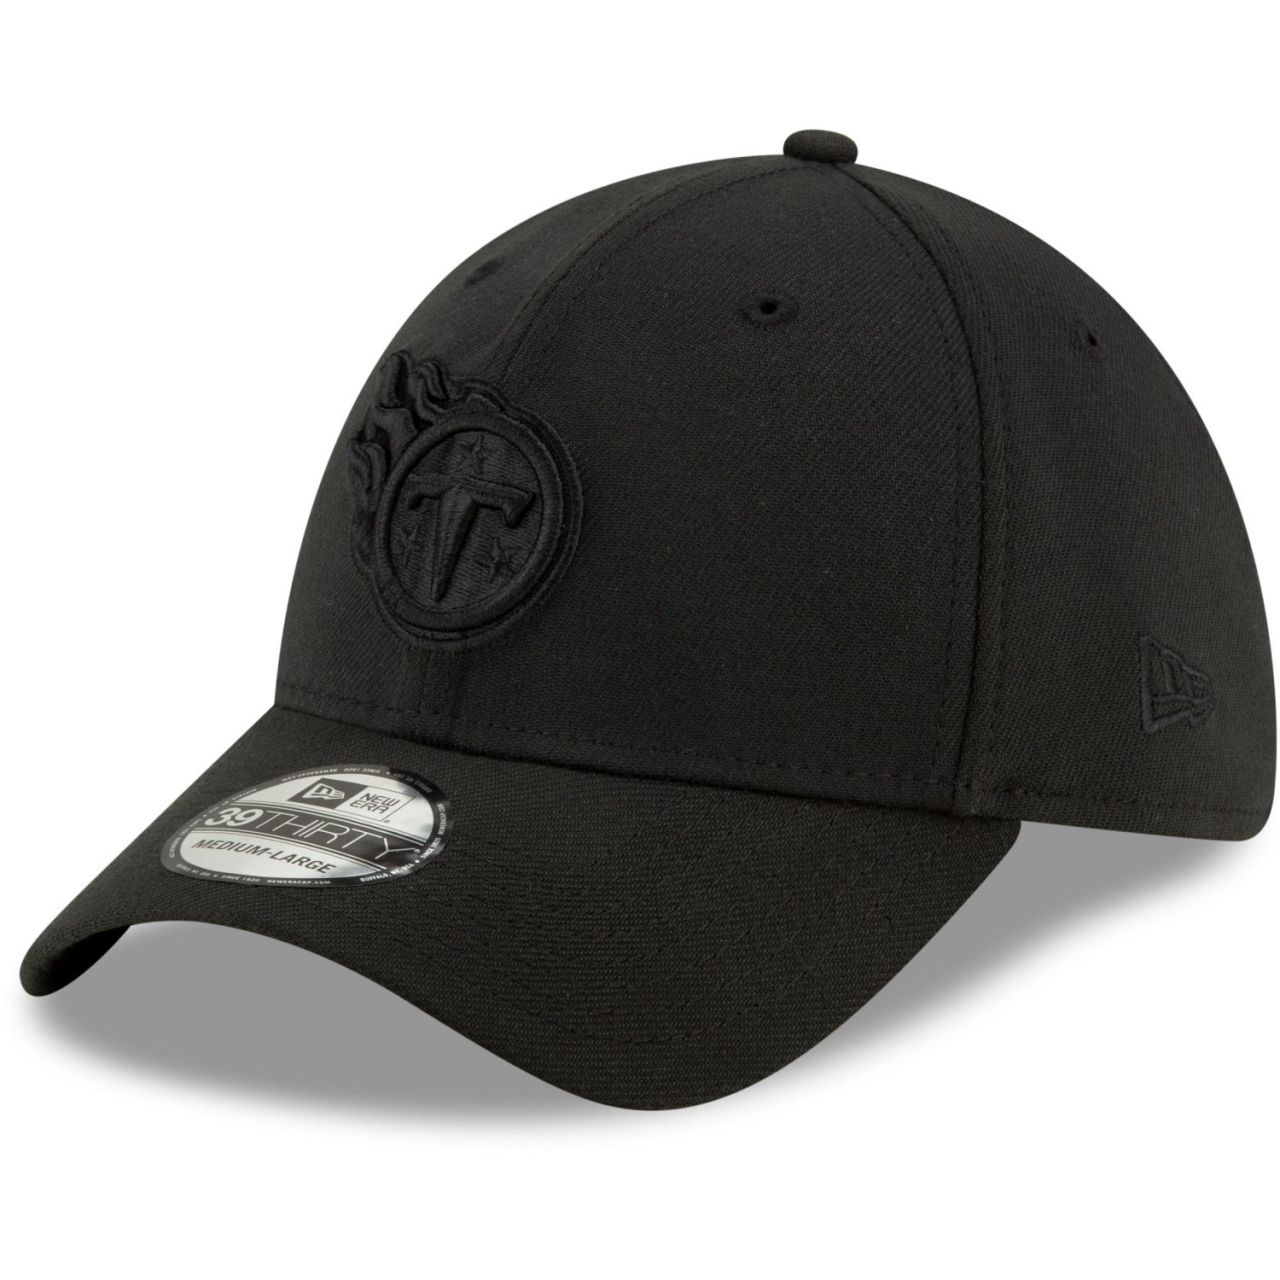 amfoo - New Era 39Thirty Stretch Cap - NFL Tennessee Titans